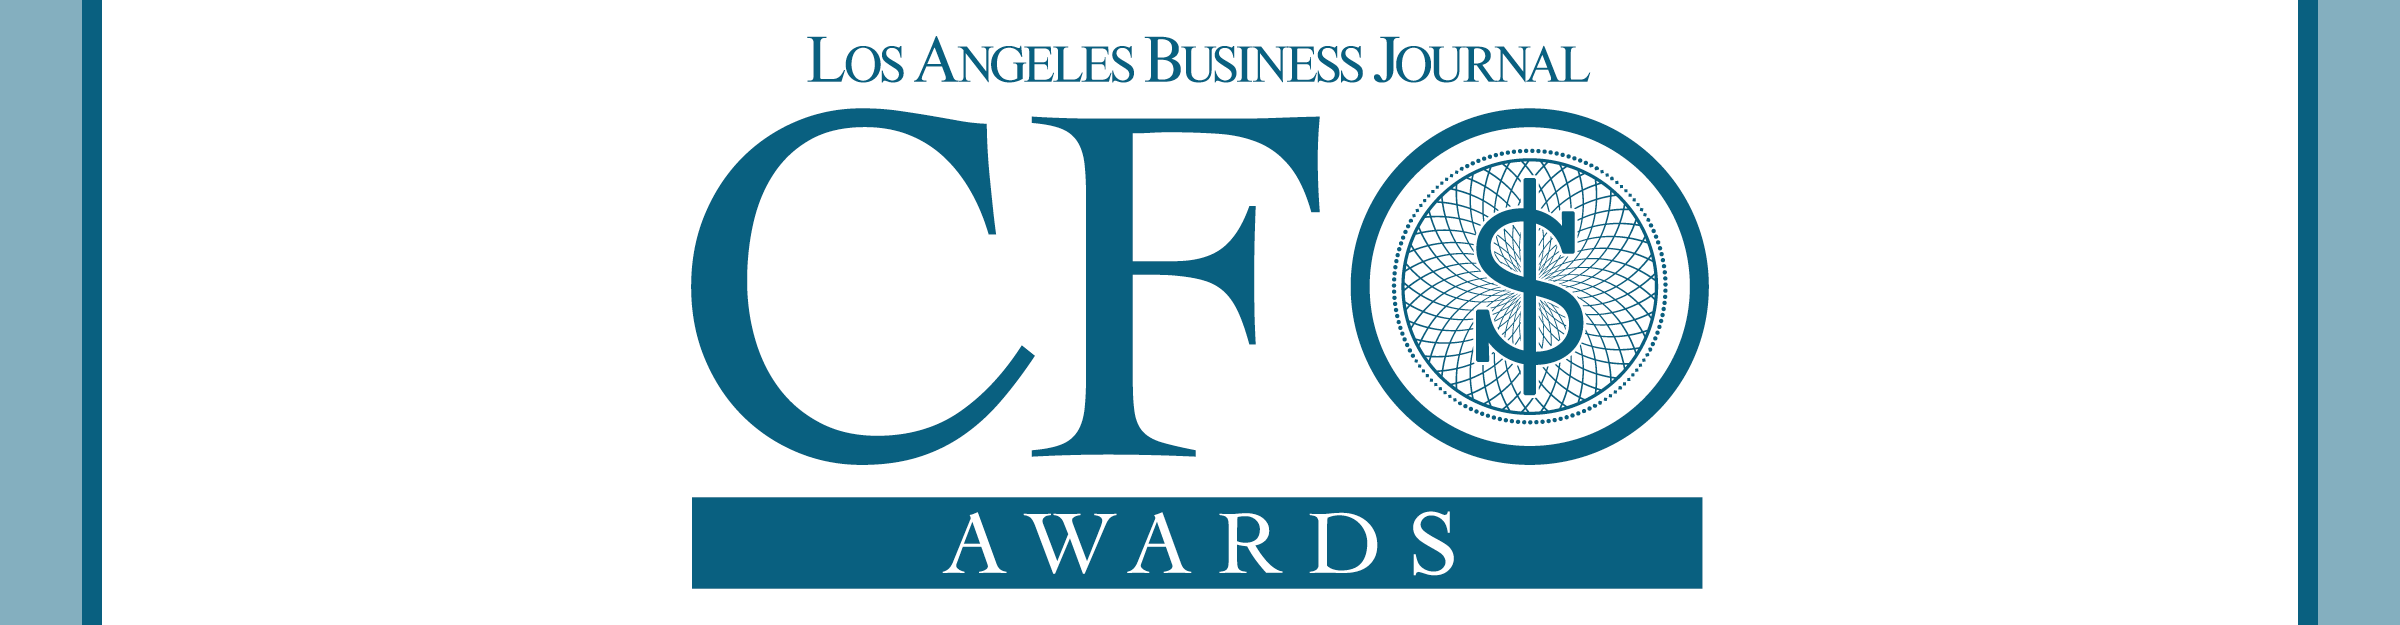 Los Angeles Business Journal CFO Awards Event Banner